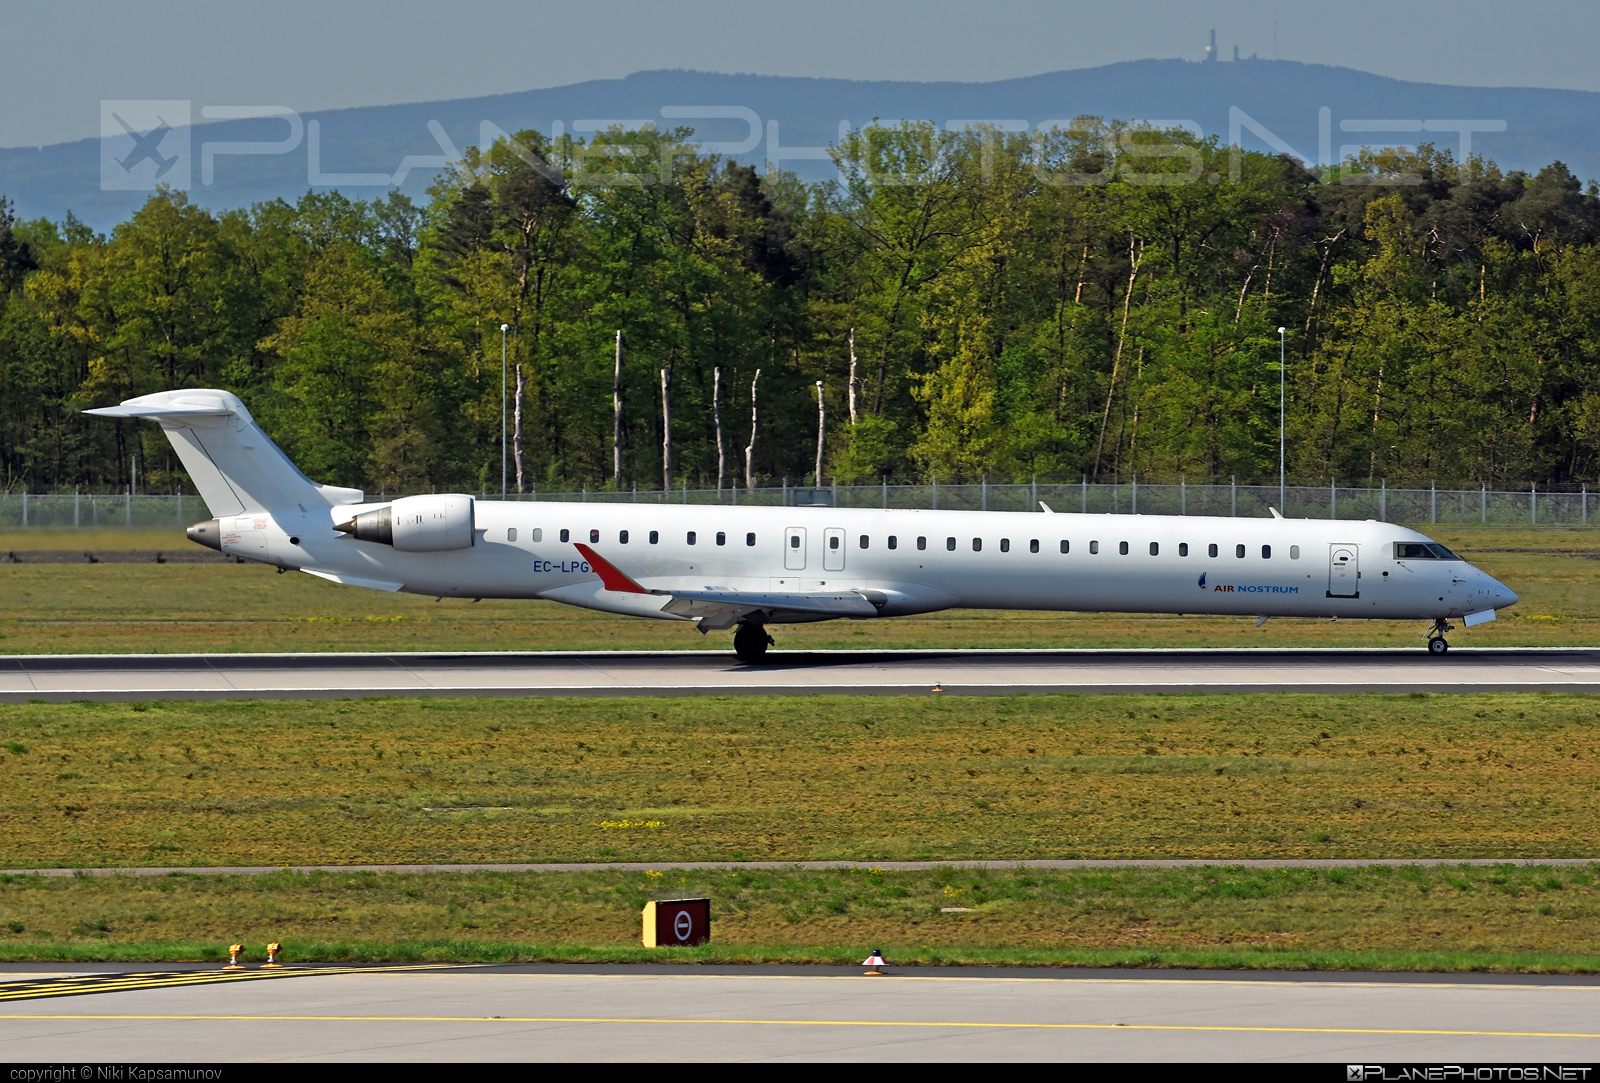 Bombardier CRJ1000 - EC-LPG operated by Air Nostrum #airnostrum #bombardier #crj1000